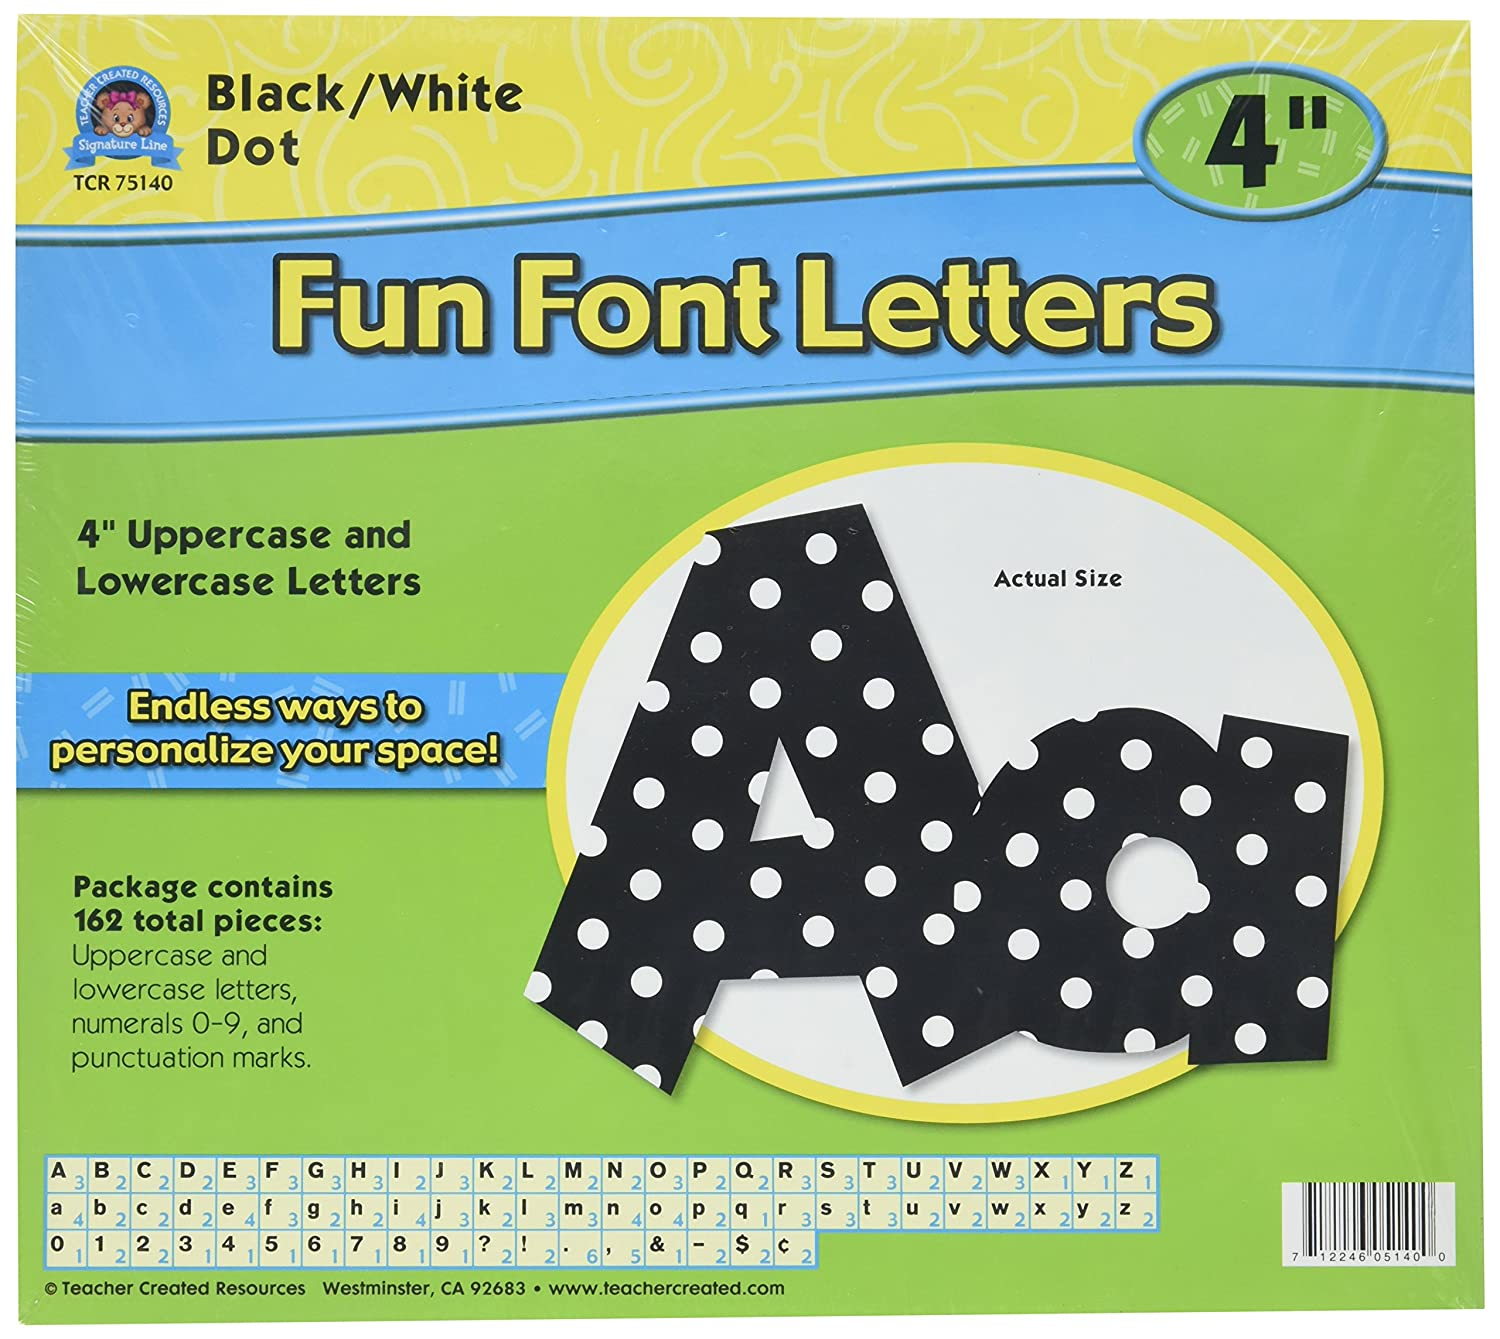 Teacher Created Resources 75140 Black/White Dot 4-Inch Fun Font Letters